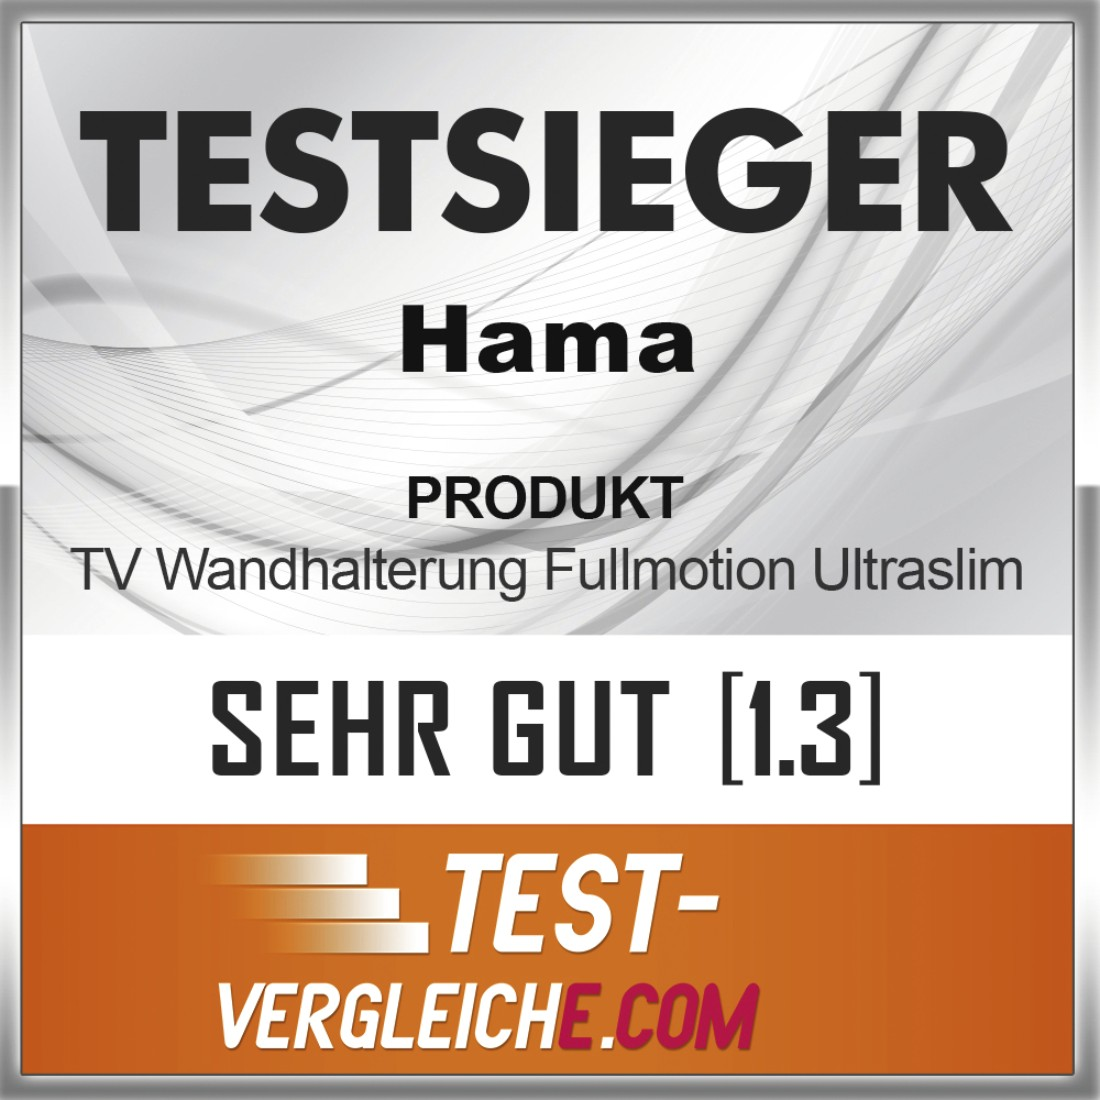 "tex2 Druckfähiges Testurteil 2 - Hama, Ultraslim FULLMOTION TV Wall Bracket, 3 Stars, 165cm (65""), 2 Arm, black"